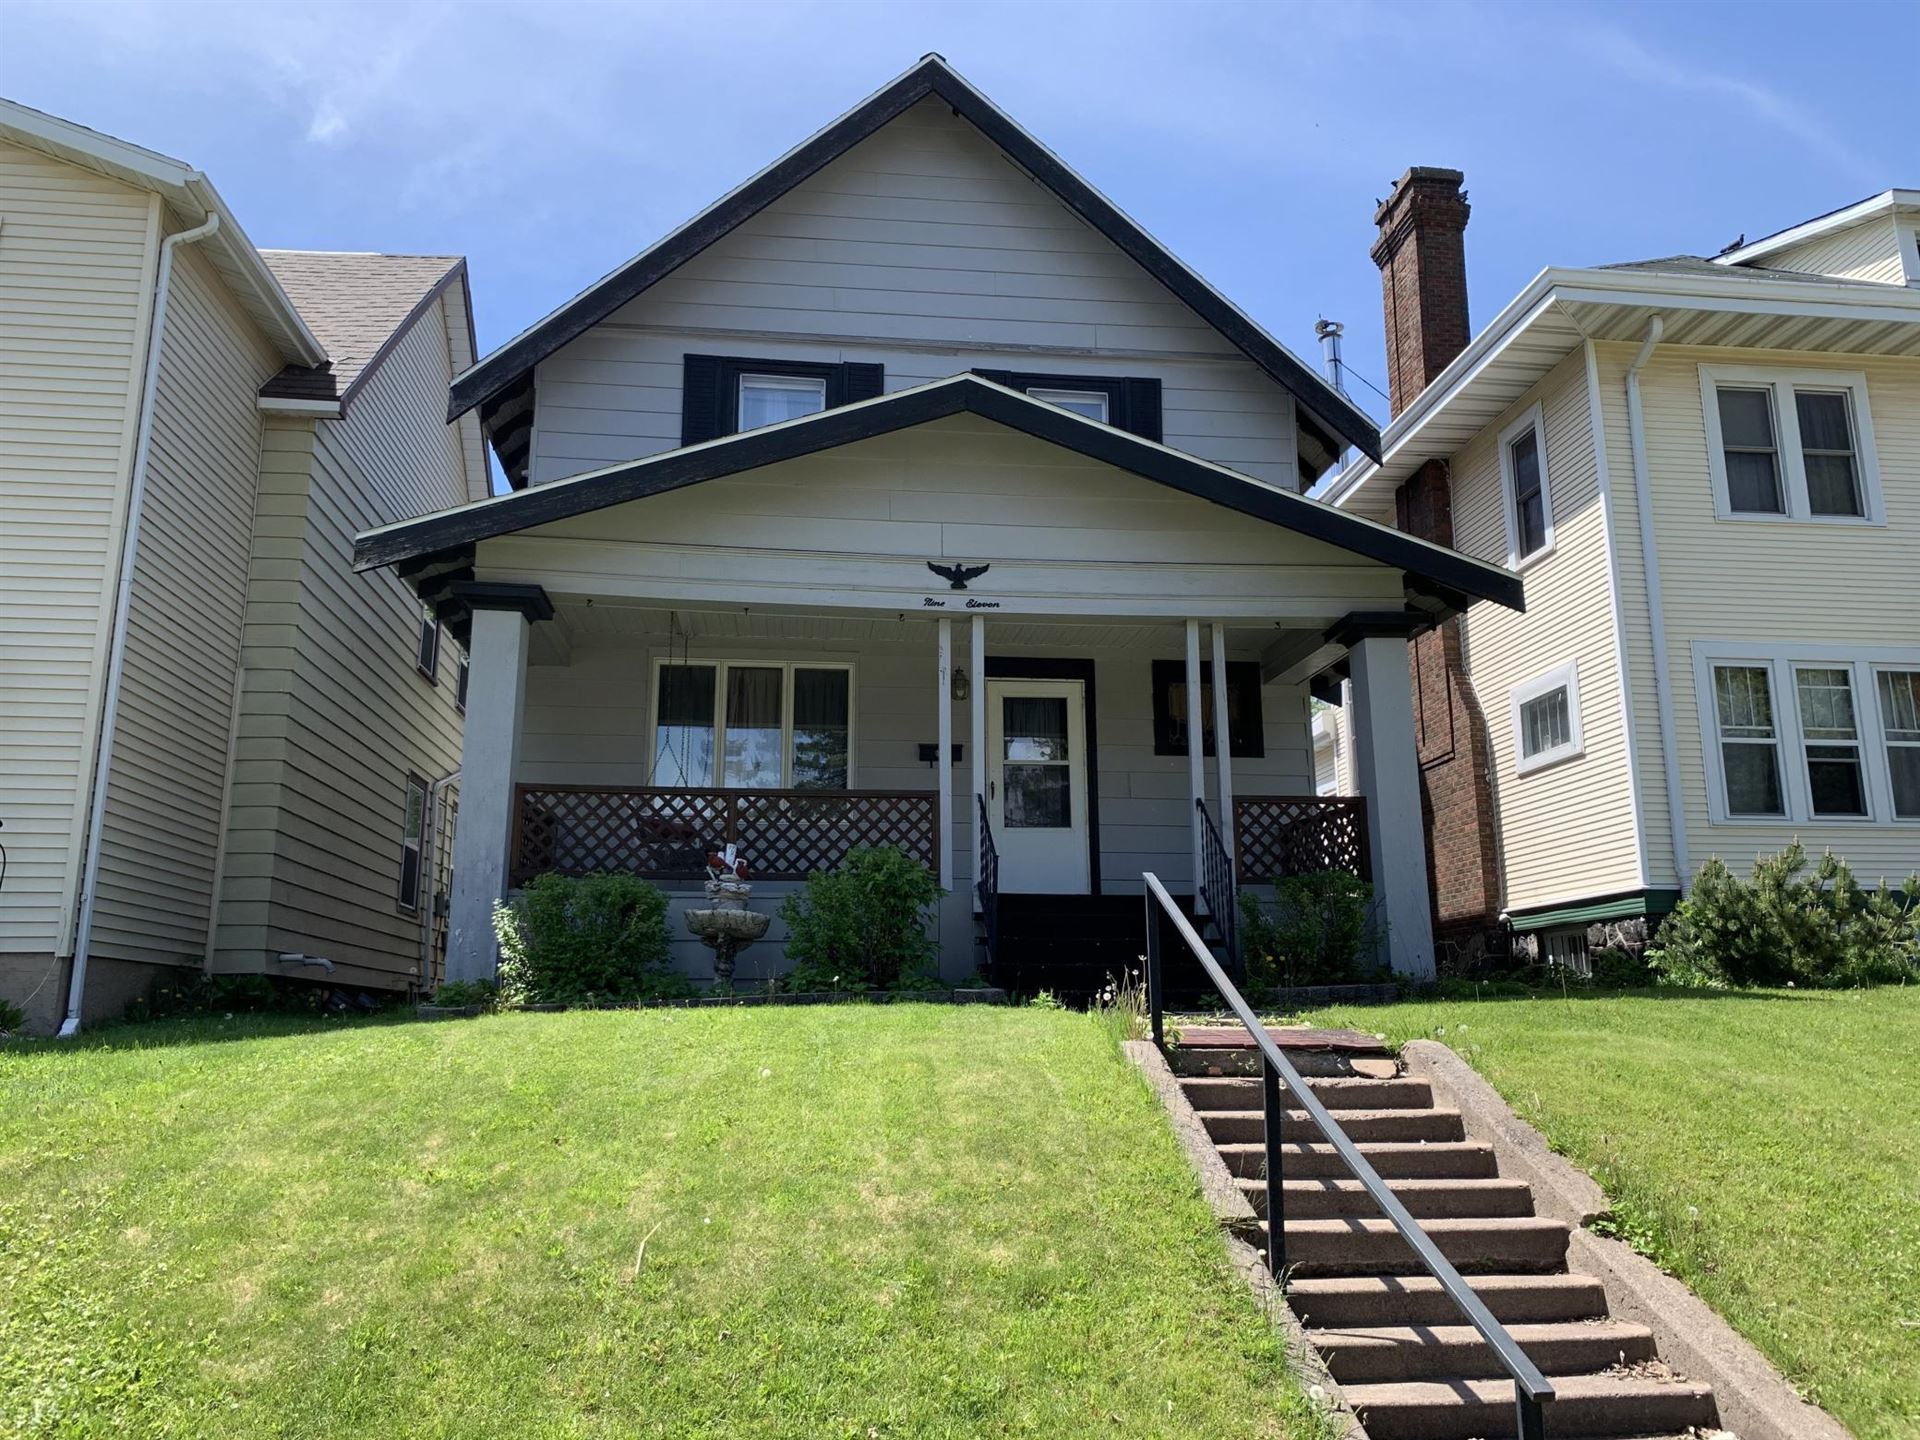 911 N Central Avenue, Duluth, MN 55807 - MLS#: 5611330